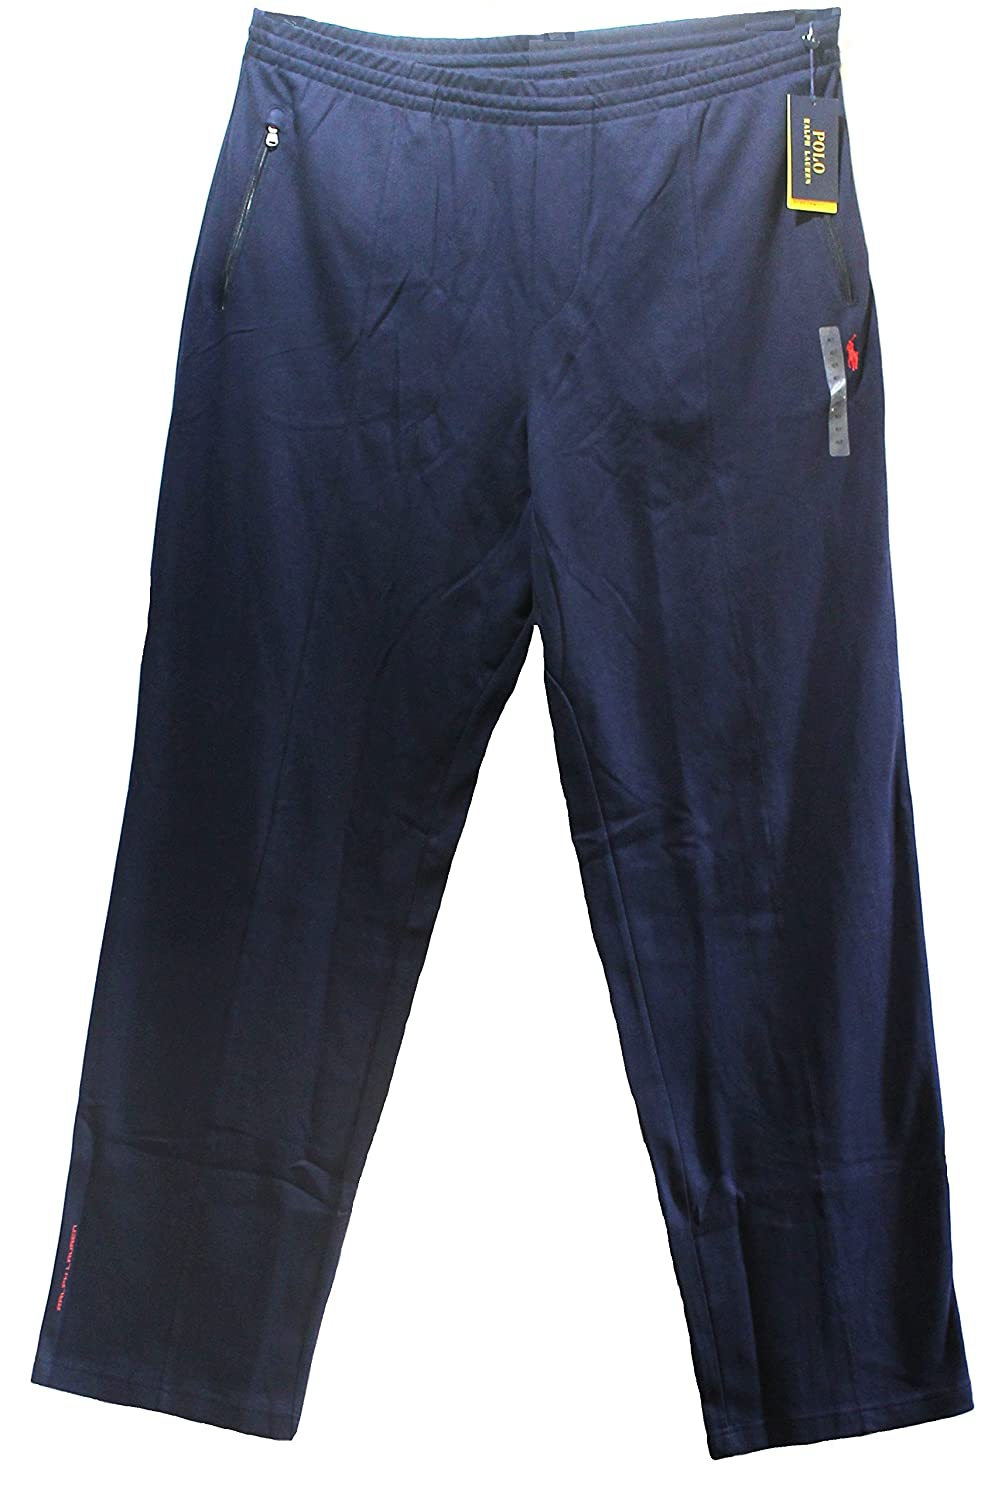 6ec47d321 Polo Ralph Lauren Men s Performance Athletic Track Pants Big and Tall  Little Pony French Navy (4LT) at Amazon Men s Clothing store